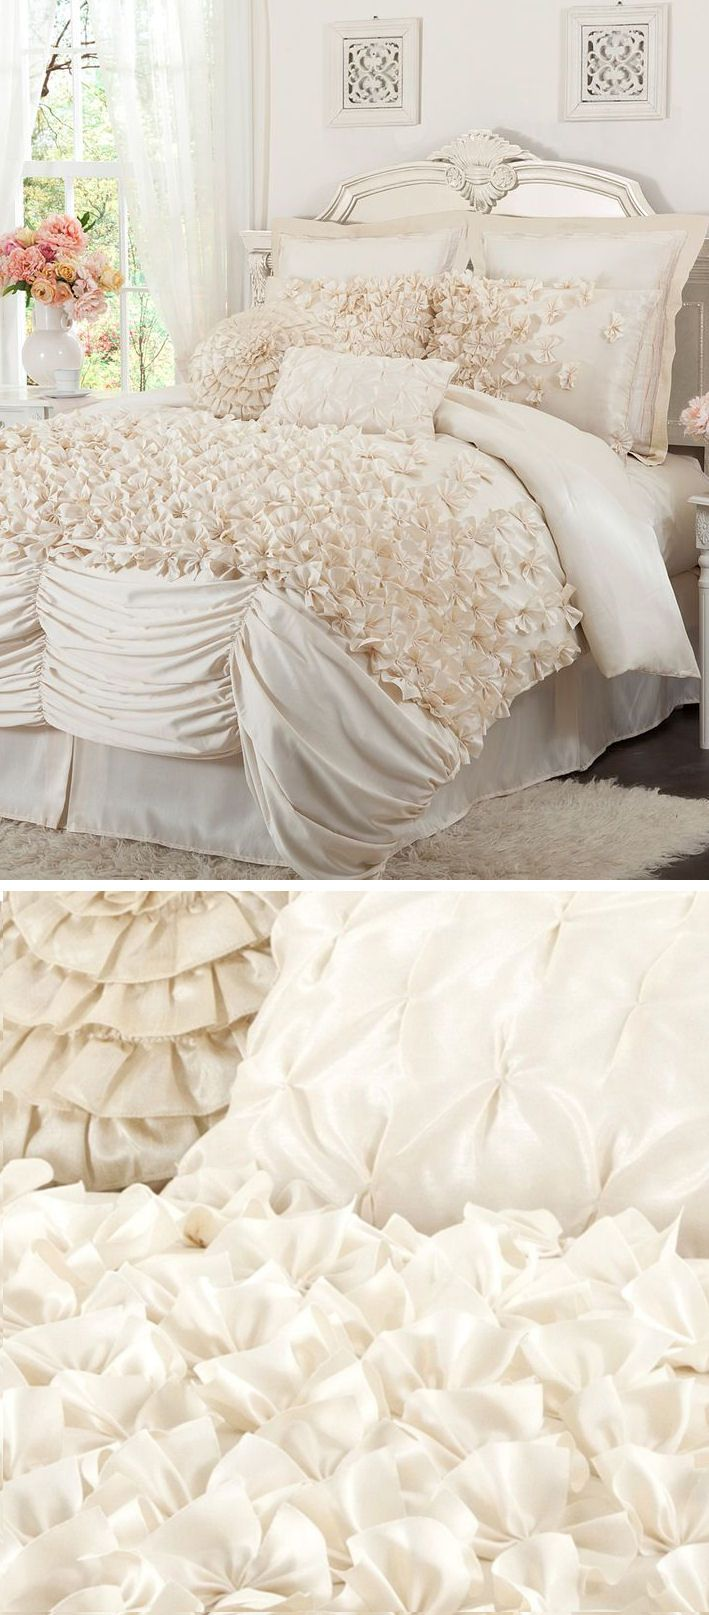 Lovely Ivory Layered Ruffle Comforter Set ♥ L.O.V.E.